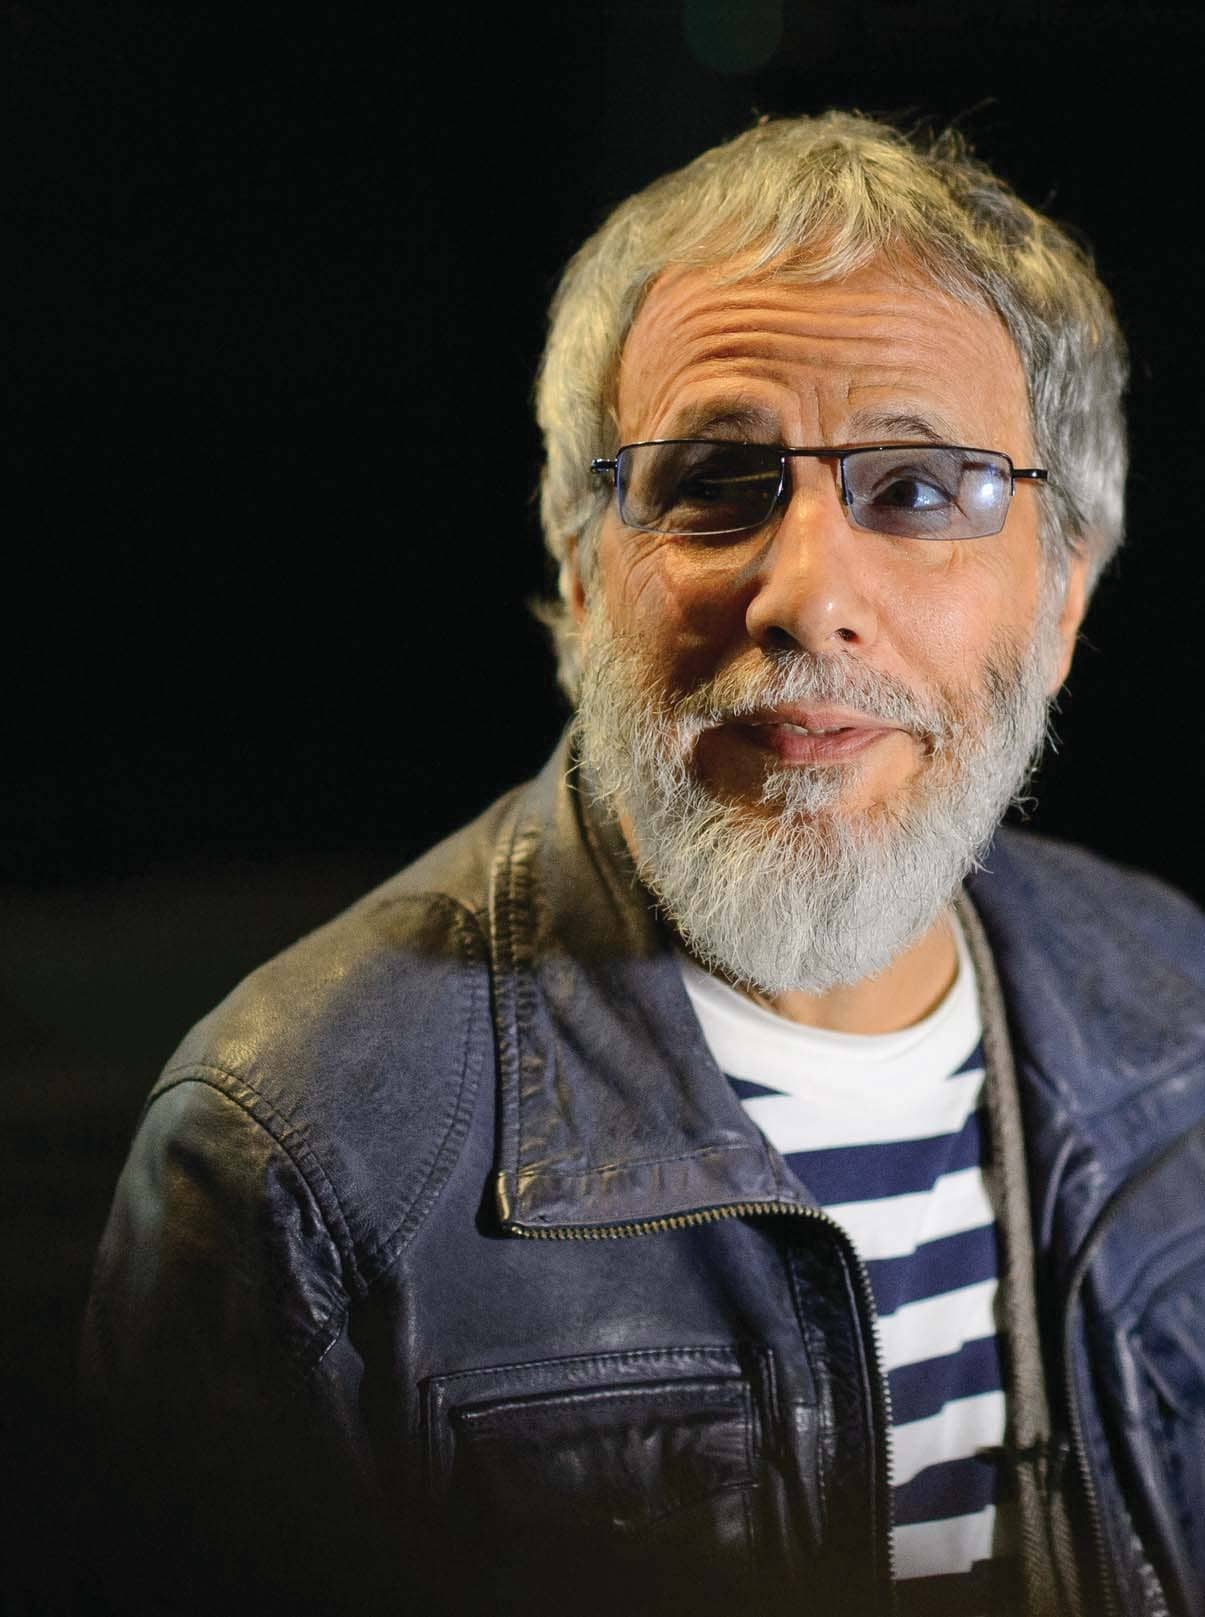 AN INTERVIEW WITH CAT STEVENS